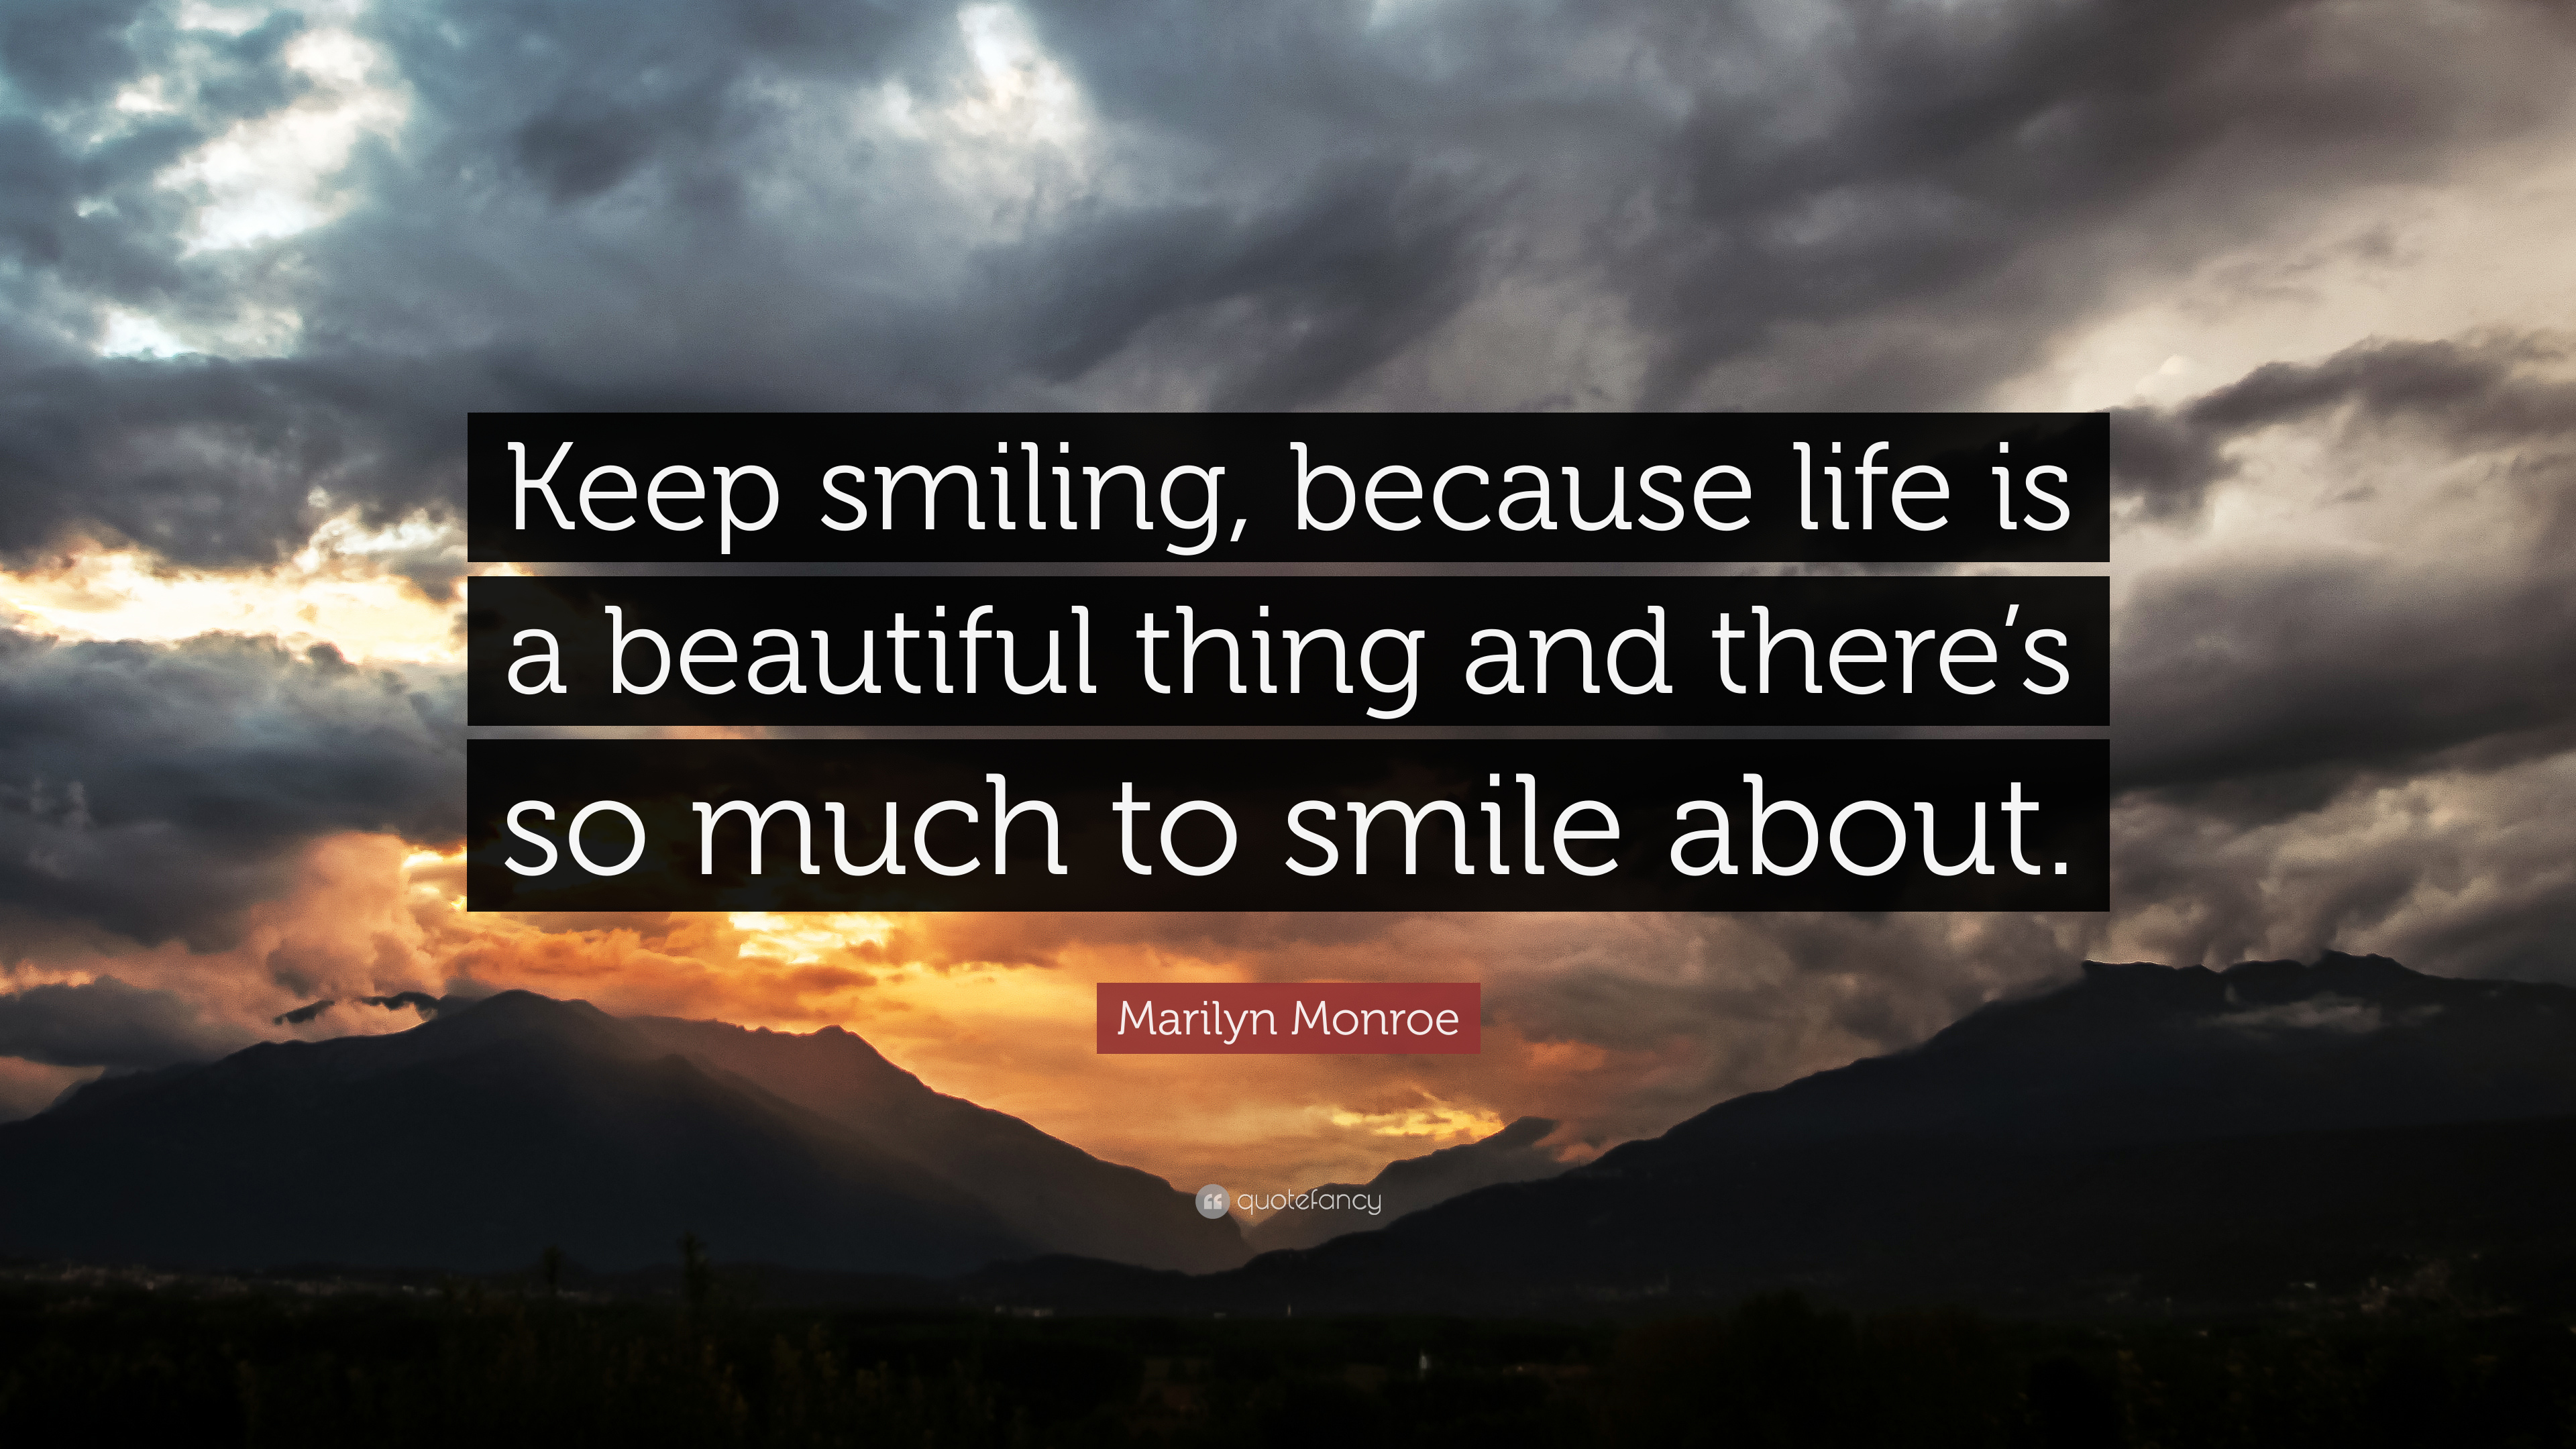 Marilyn Monroe Quote Keep Smiling Because Life Is A Beautiful